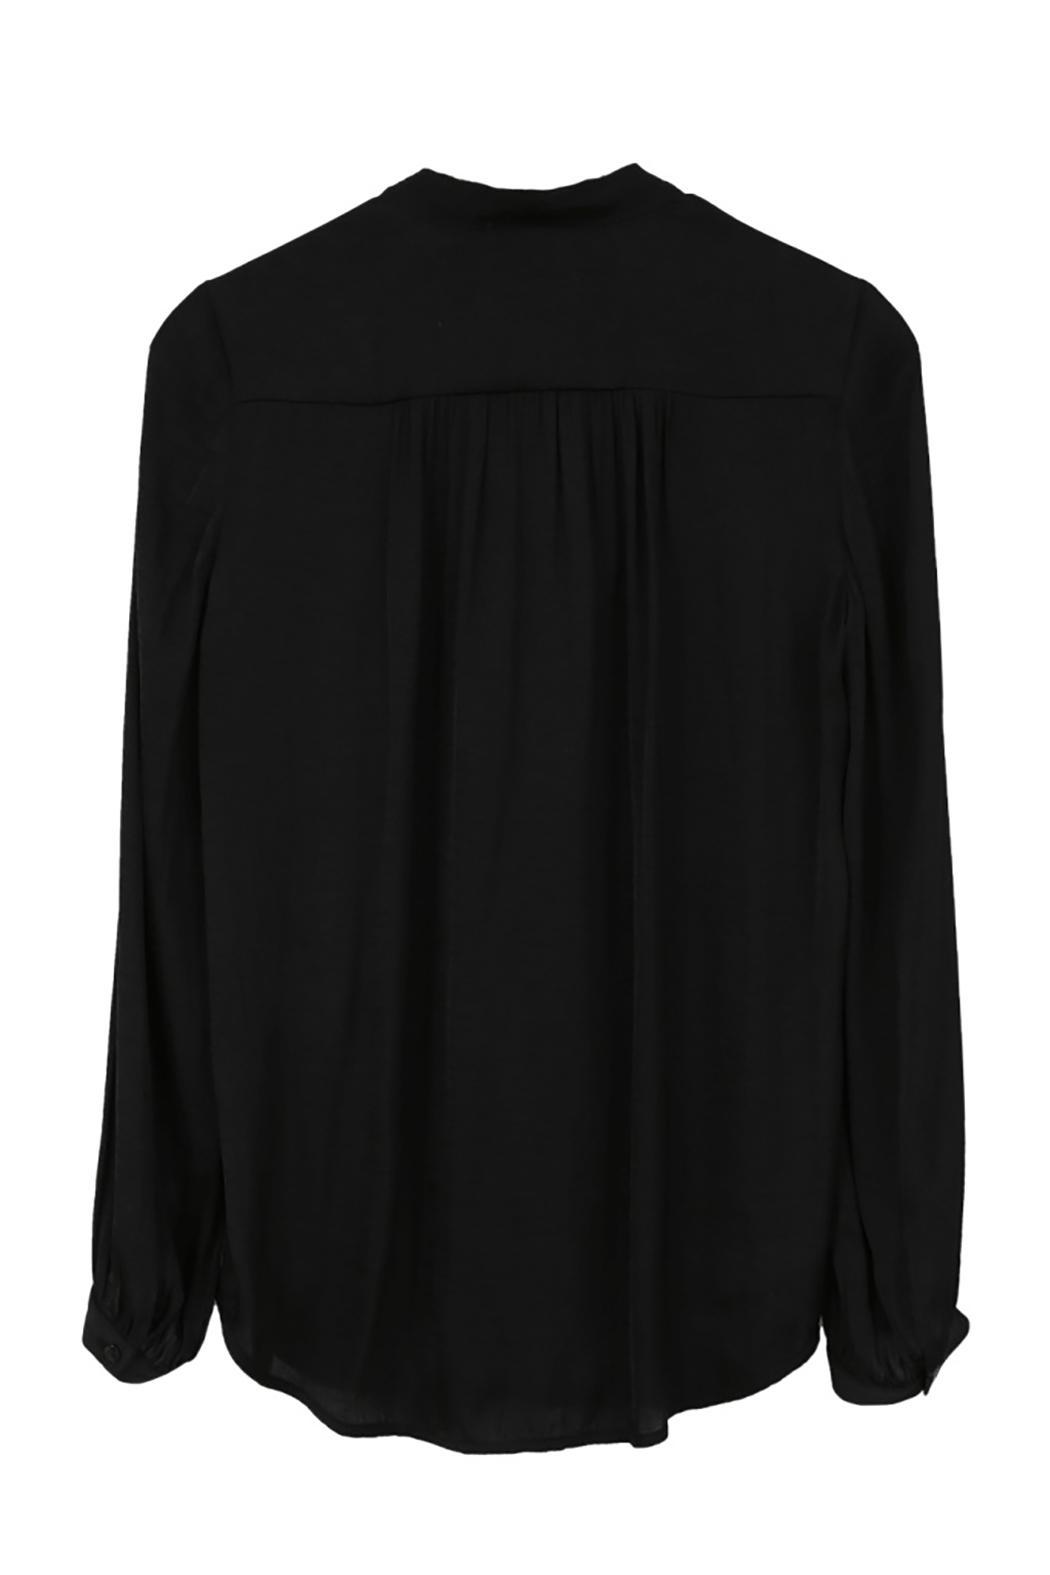 Color Block Black Tie Blouse - Side Cropped Image